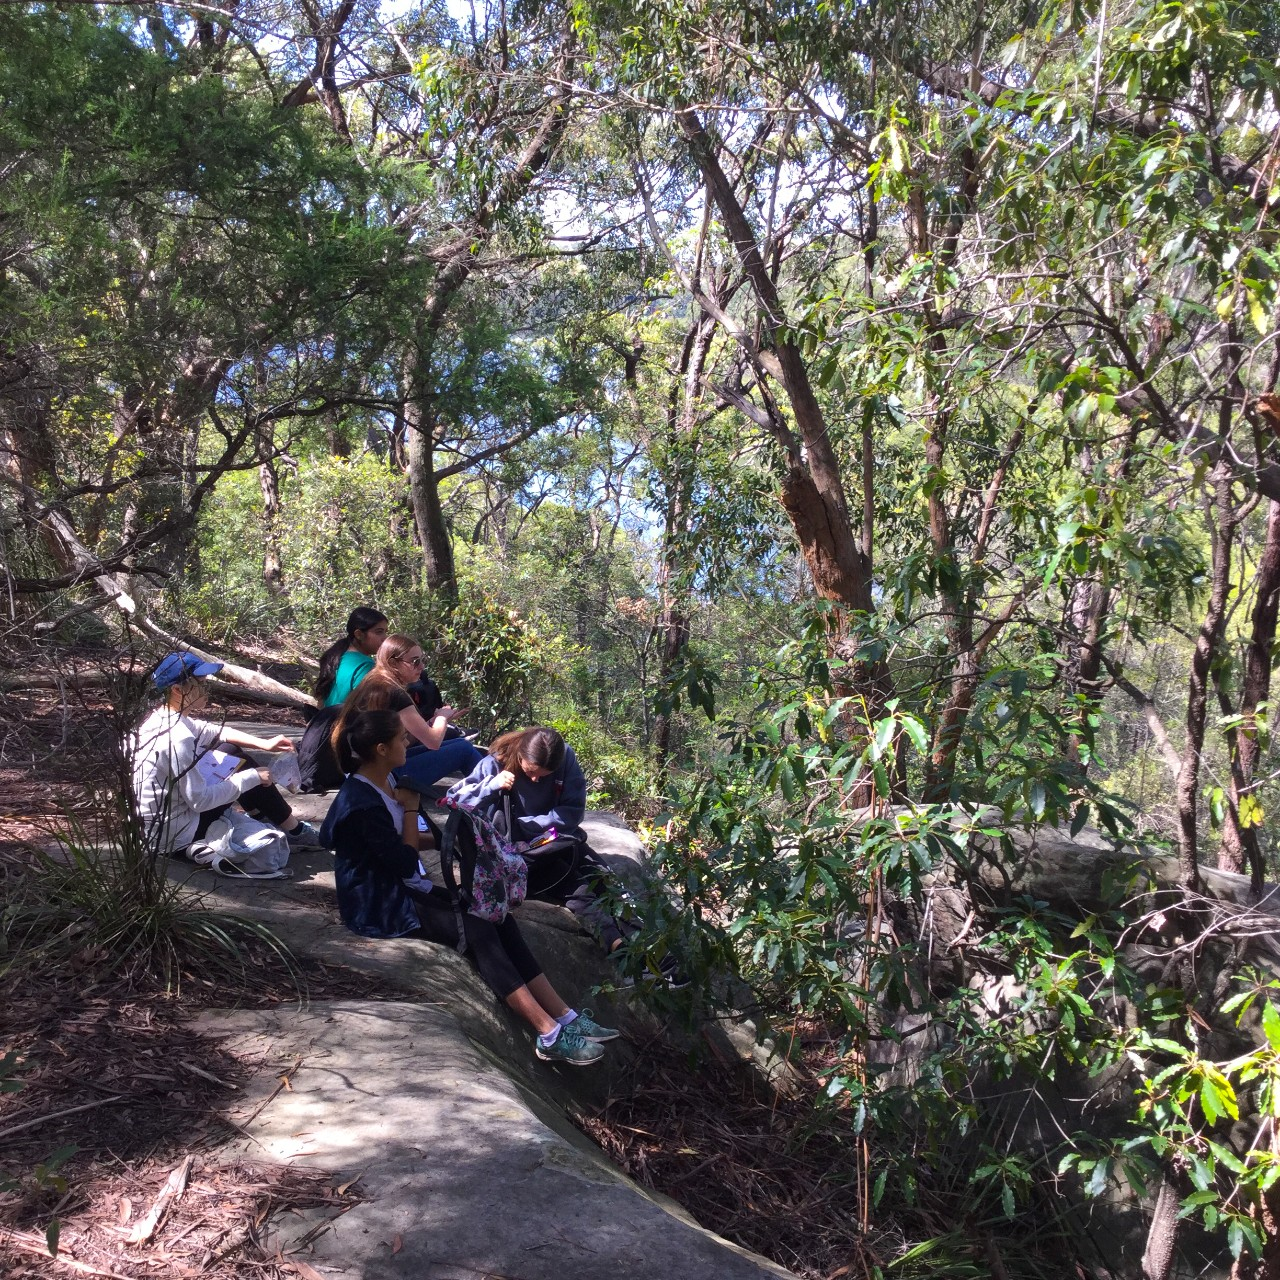 students sitting on a rock in the bush